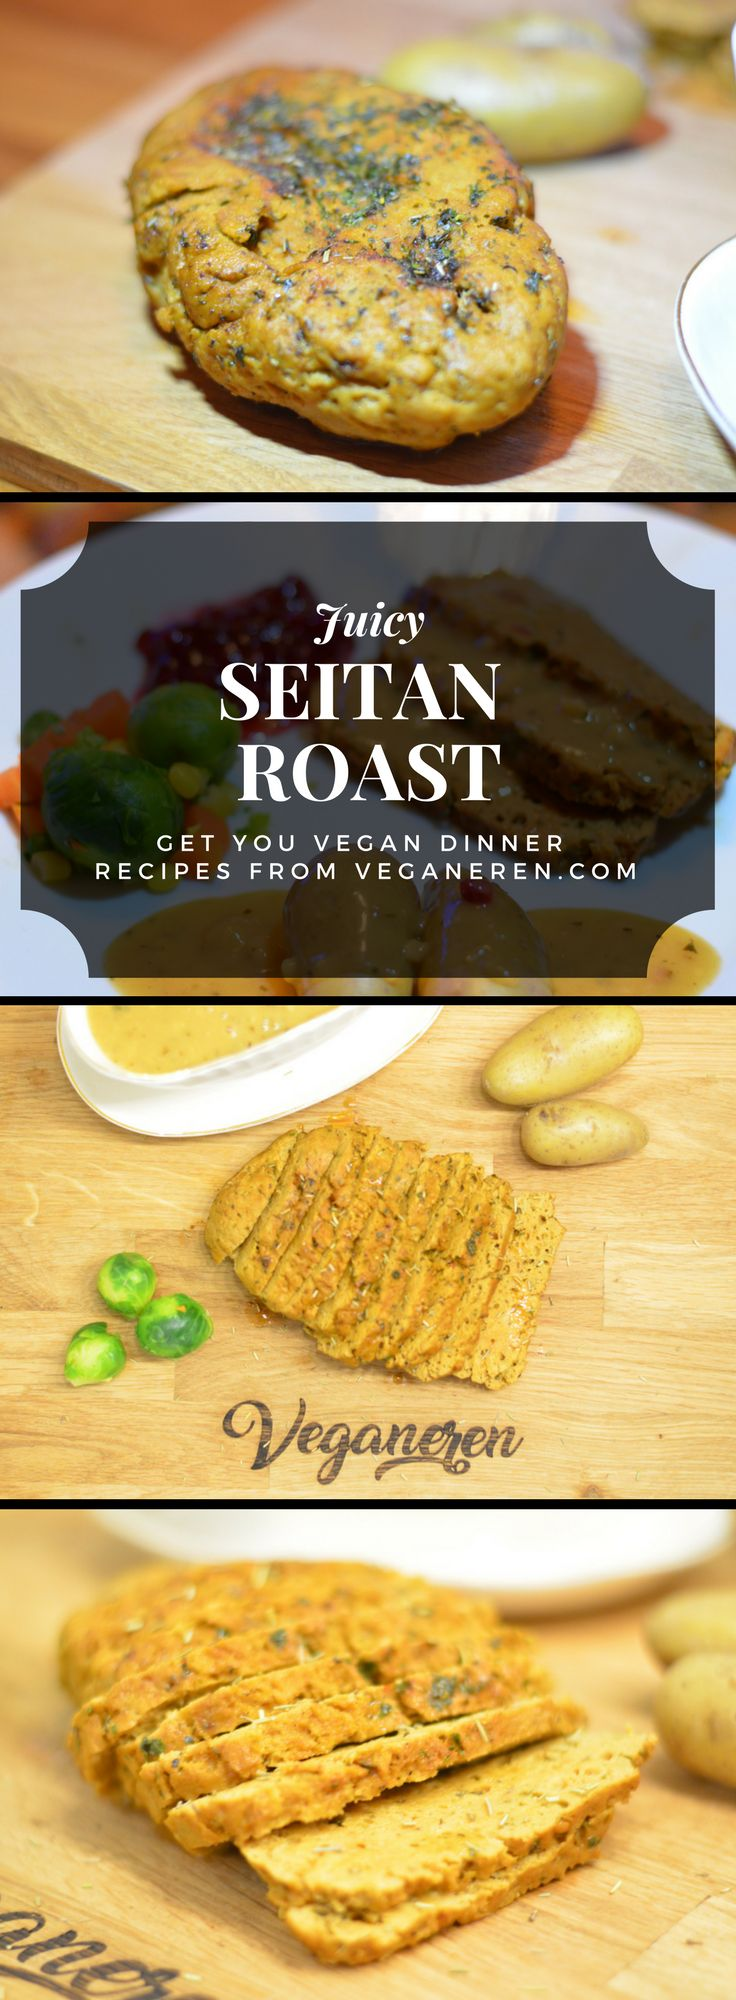 Happy New Year! We made a delicious New Years dinner, seitan roast with herbed cream sauce, potatoes and vegetables. Perfect for a feast. Hope you are all enjoying the last day in 2017 and we wish you all the best for 2018. It's going to be a GREAT year! Visit the blog for recipes.